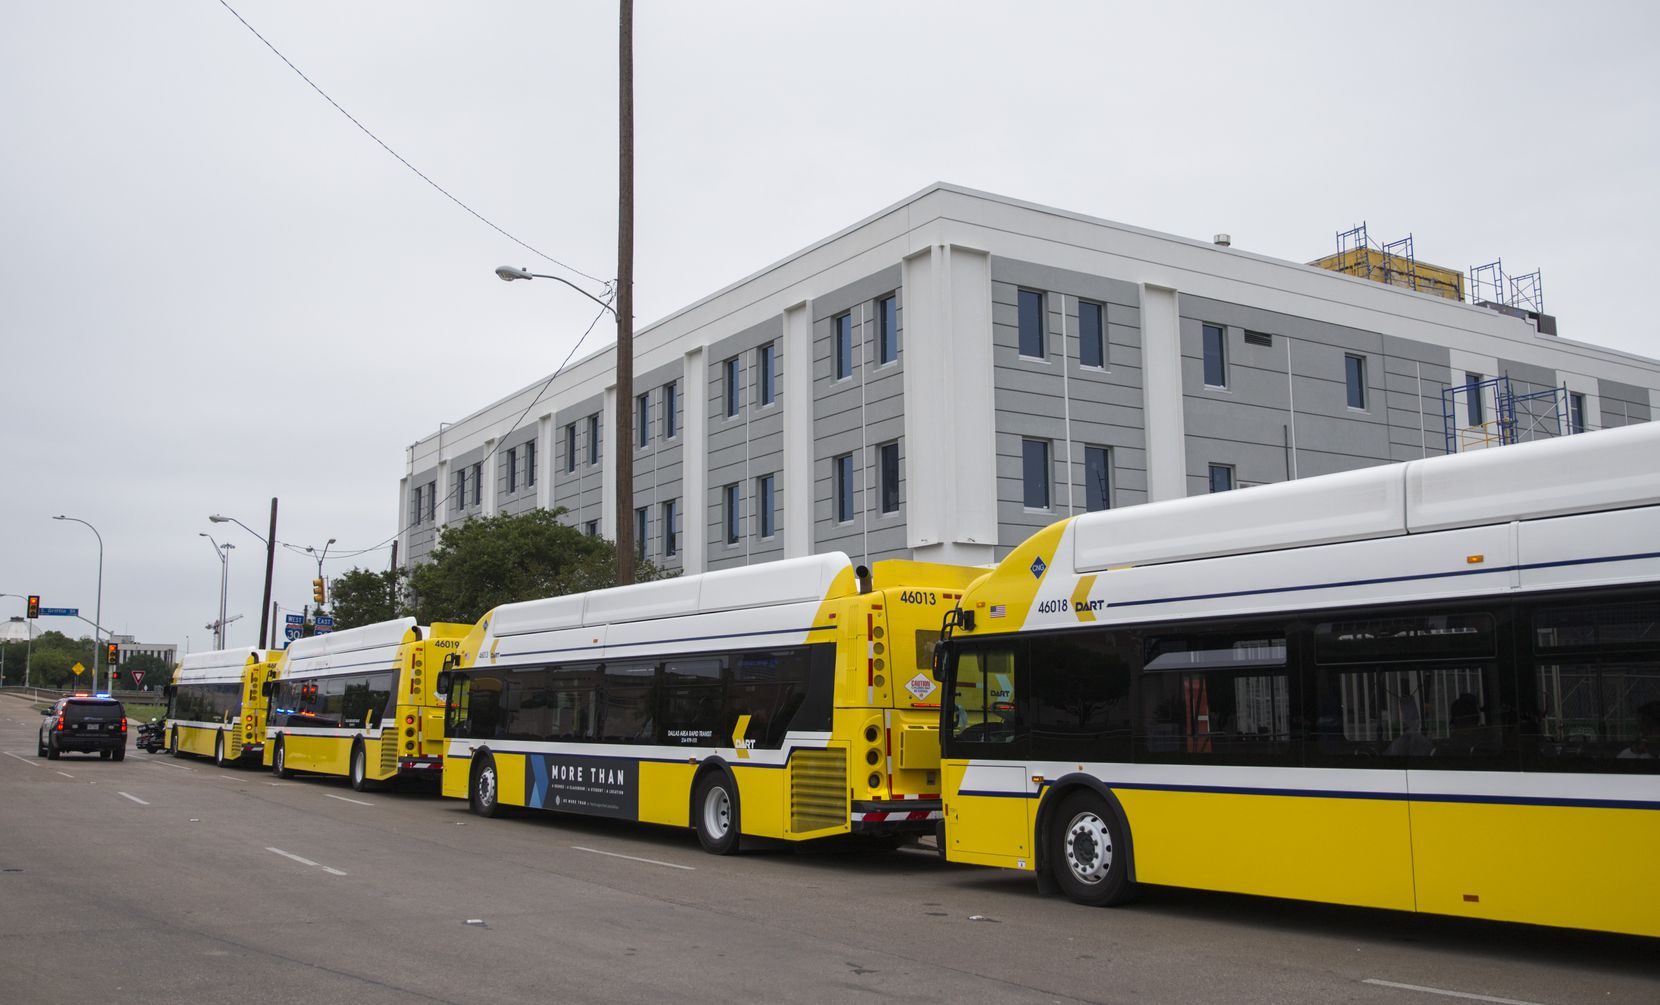 Ridership on DART buses and trains has plummeted during the pandemic. The agency expects to take a nearly $390 million two-year hit from losses in sales tax revenue and rider fares.